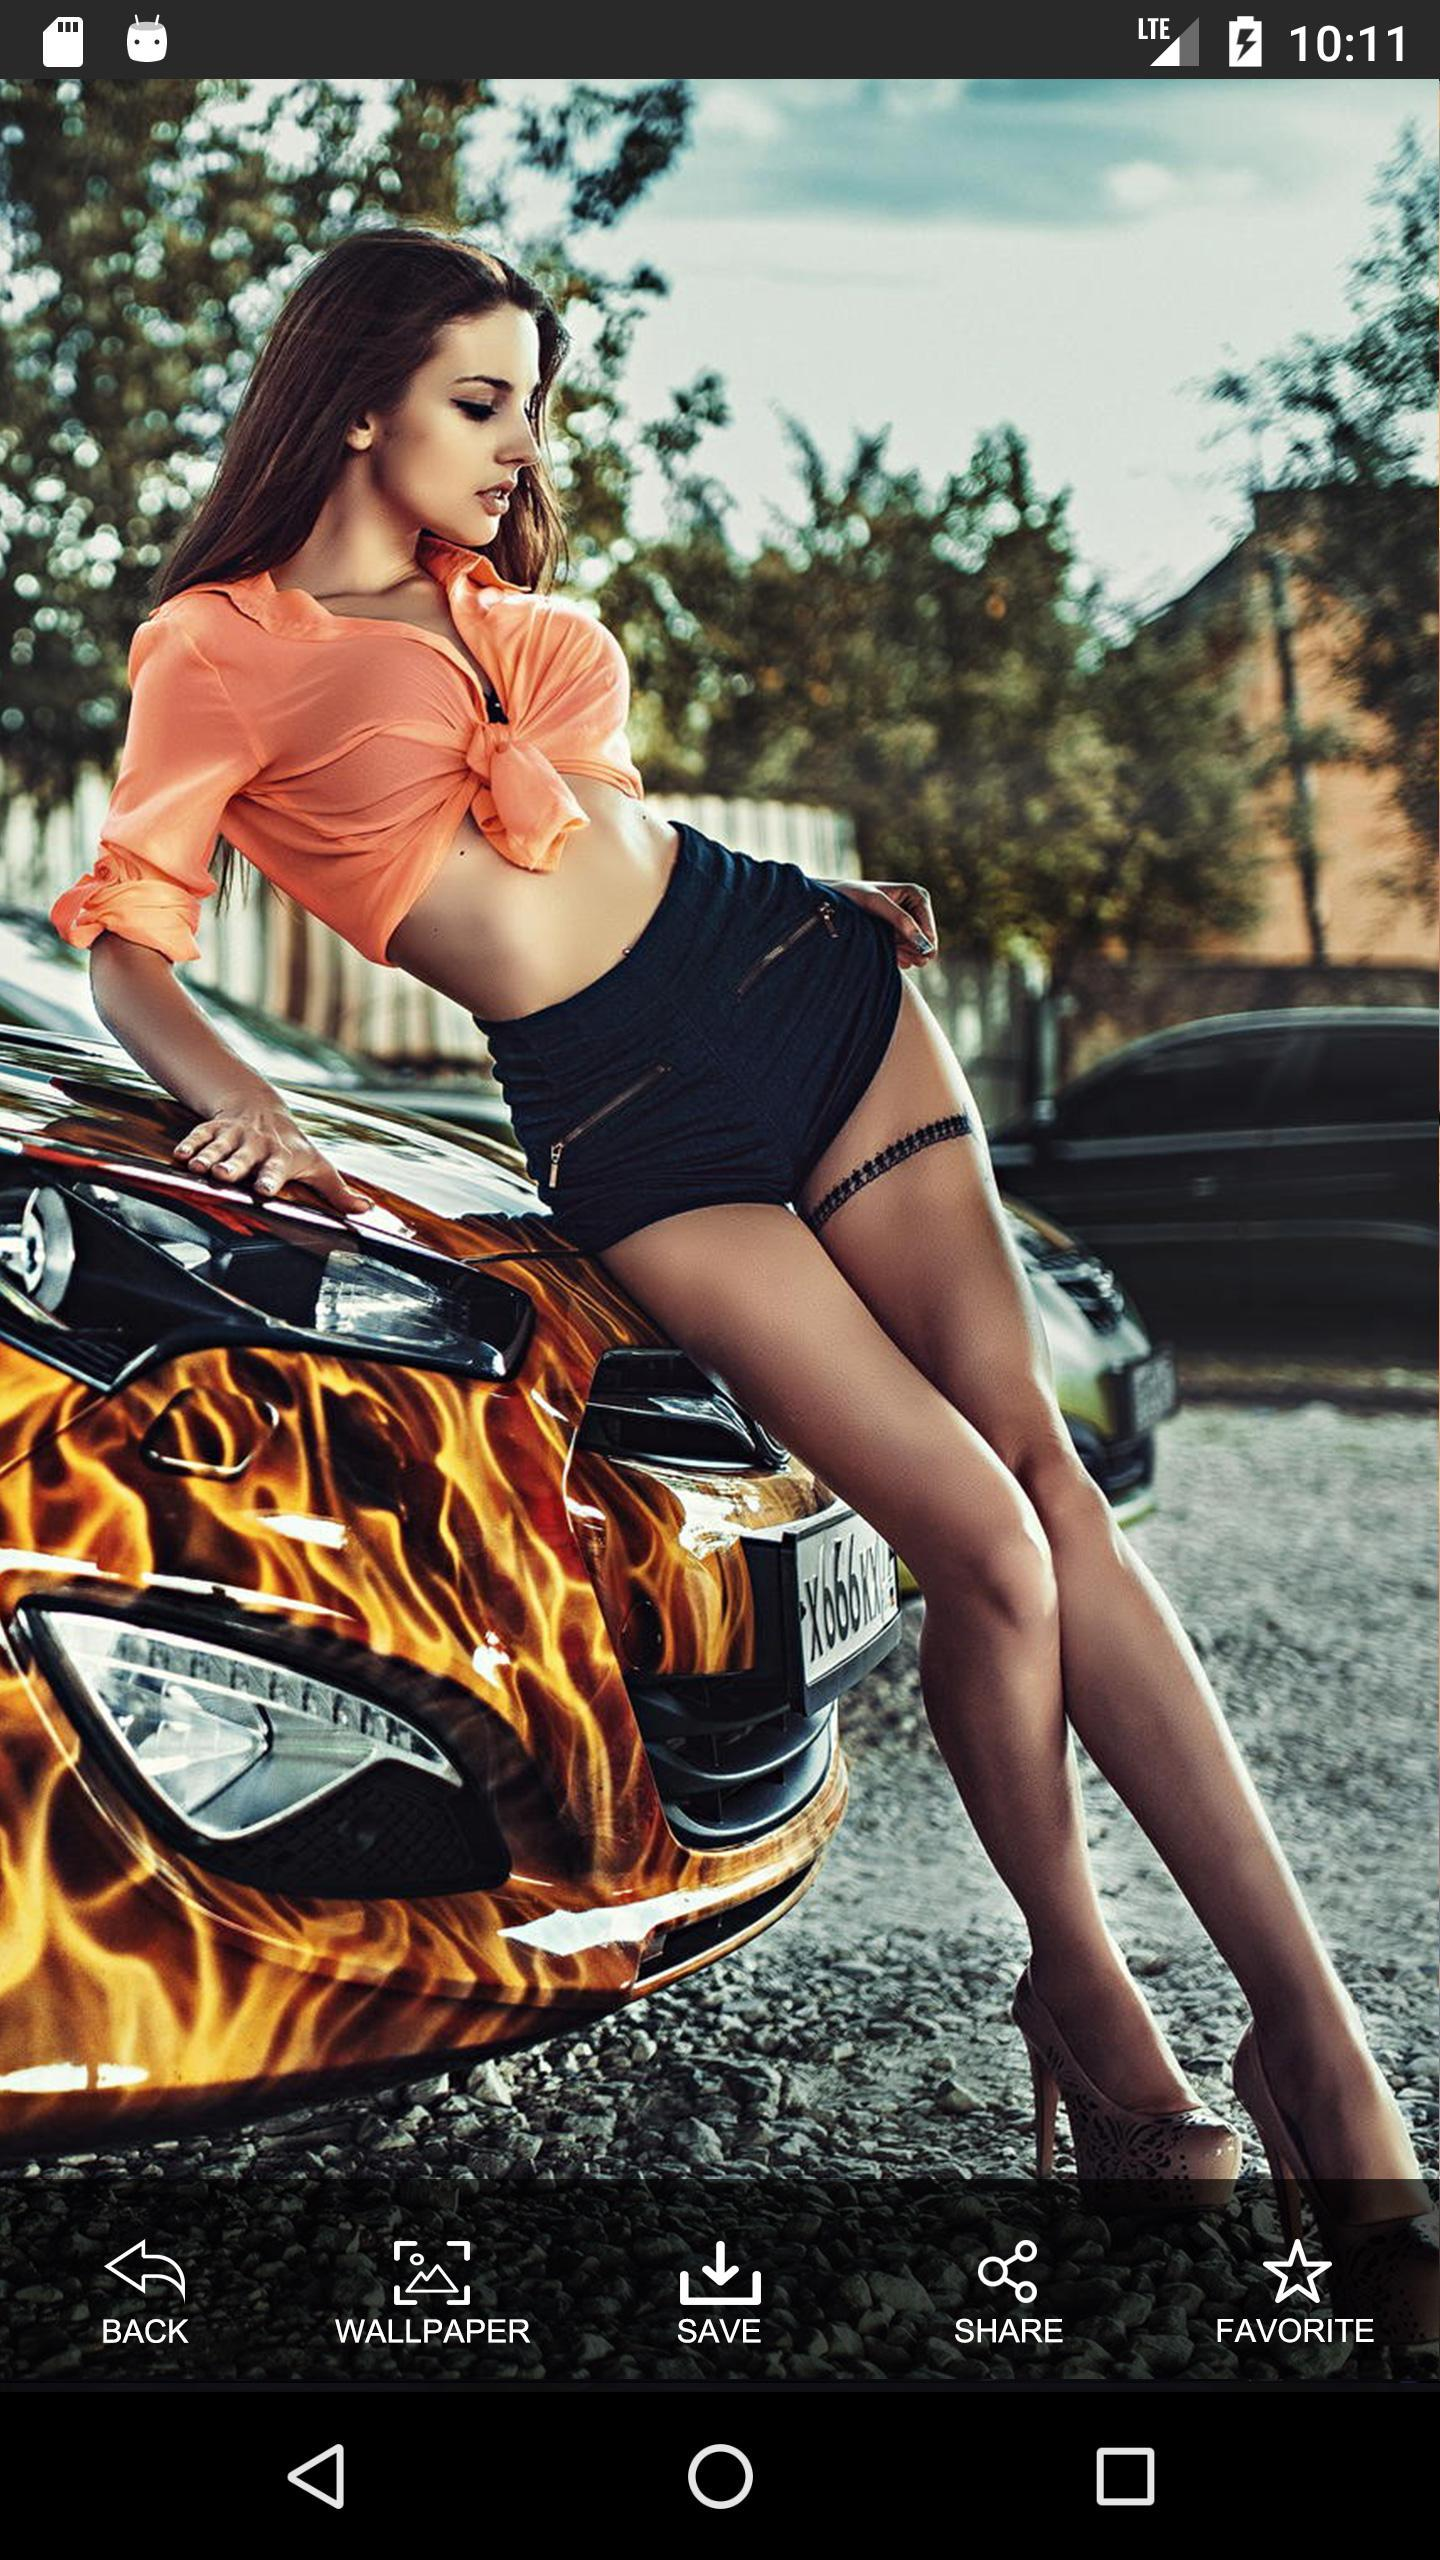 Sexy Car Girl Wallpaper Hd-4K For Android - Apk Download-3674